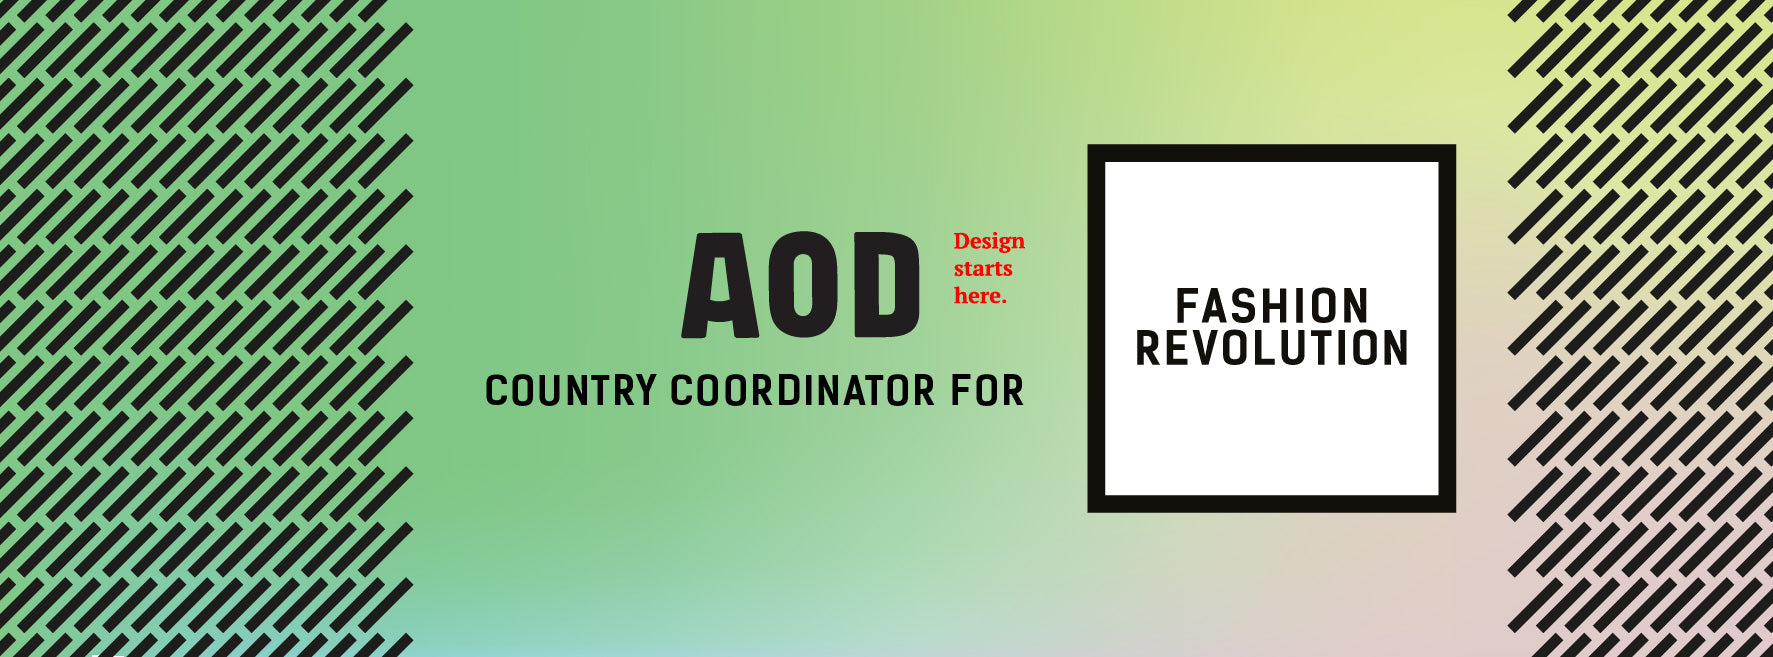 Country Coordinator Fashion Revolution